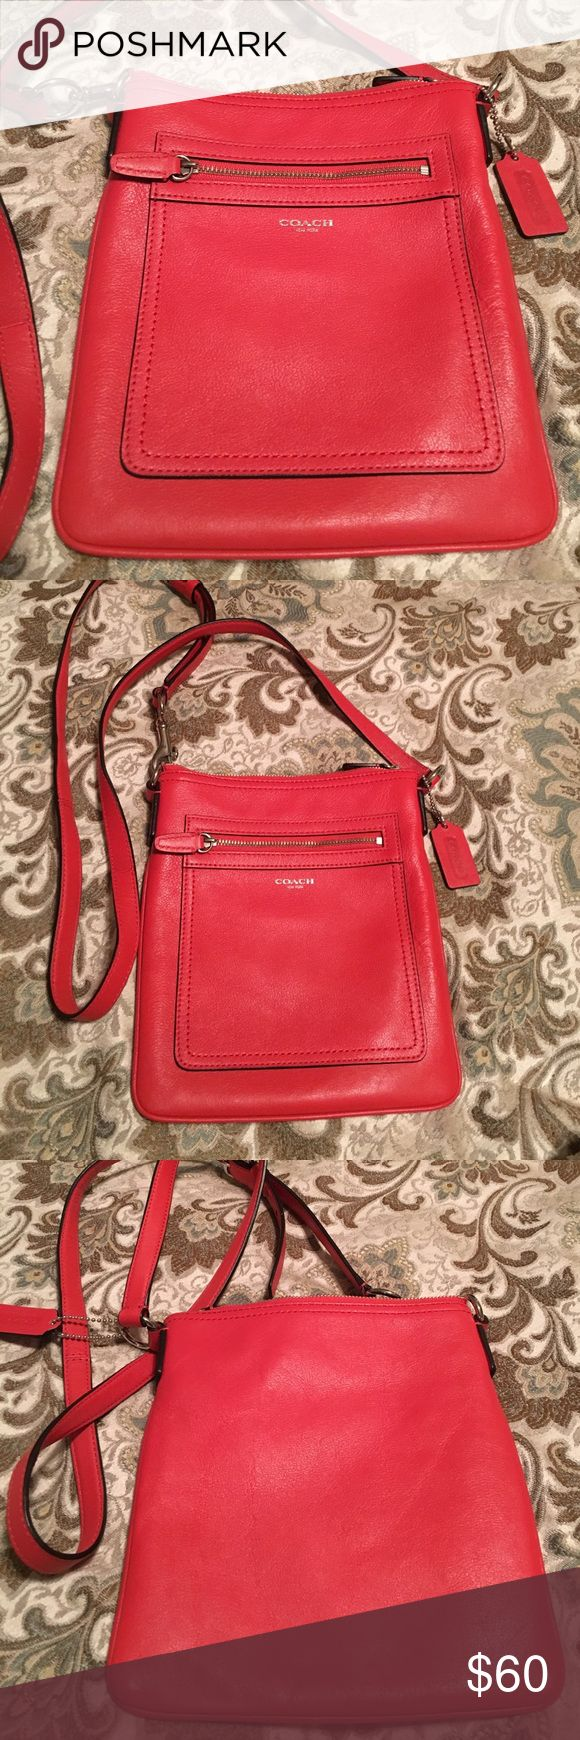 "Coach Legacy Crossbody Beautiful coral red color and LIKE NEW inside and out!! Smoke free home. Adjustable strap, outside zipper pocket. Approx 9"" h x 8""'w. Coach Bags Crossbody Bags"